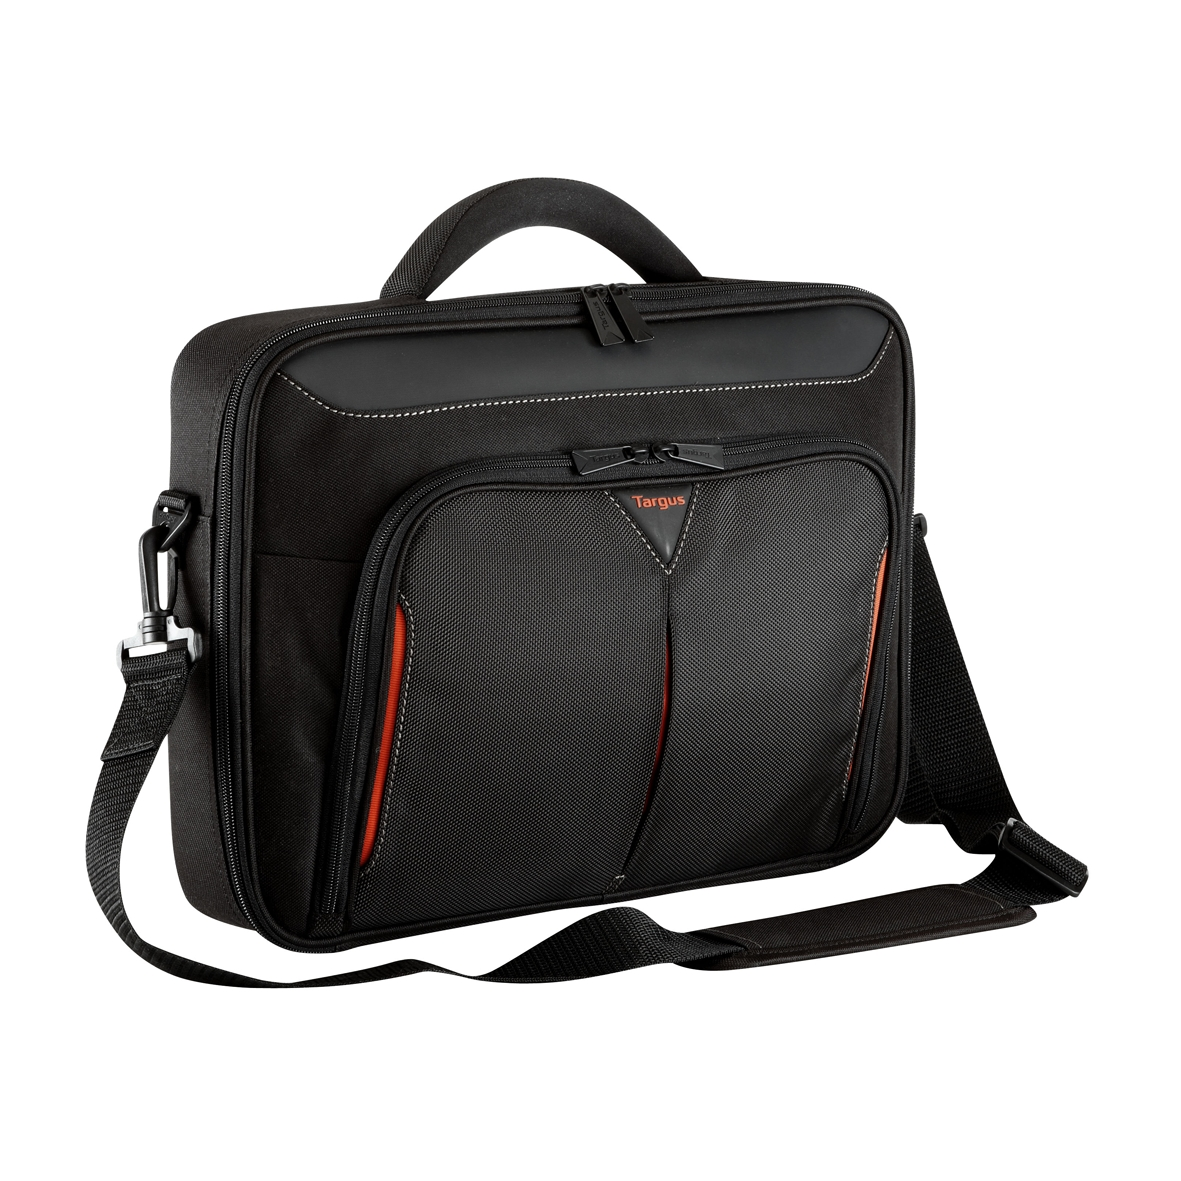 "Targus Classic+ 15-15.6"" Clamshell Laptop Bag - Black/Red"